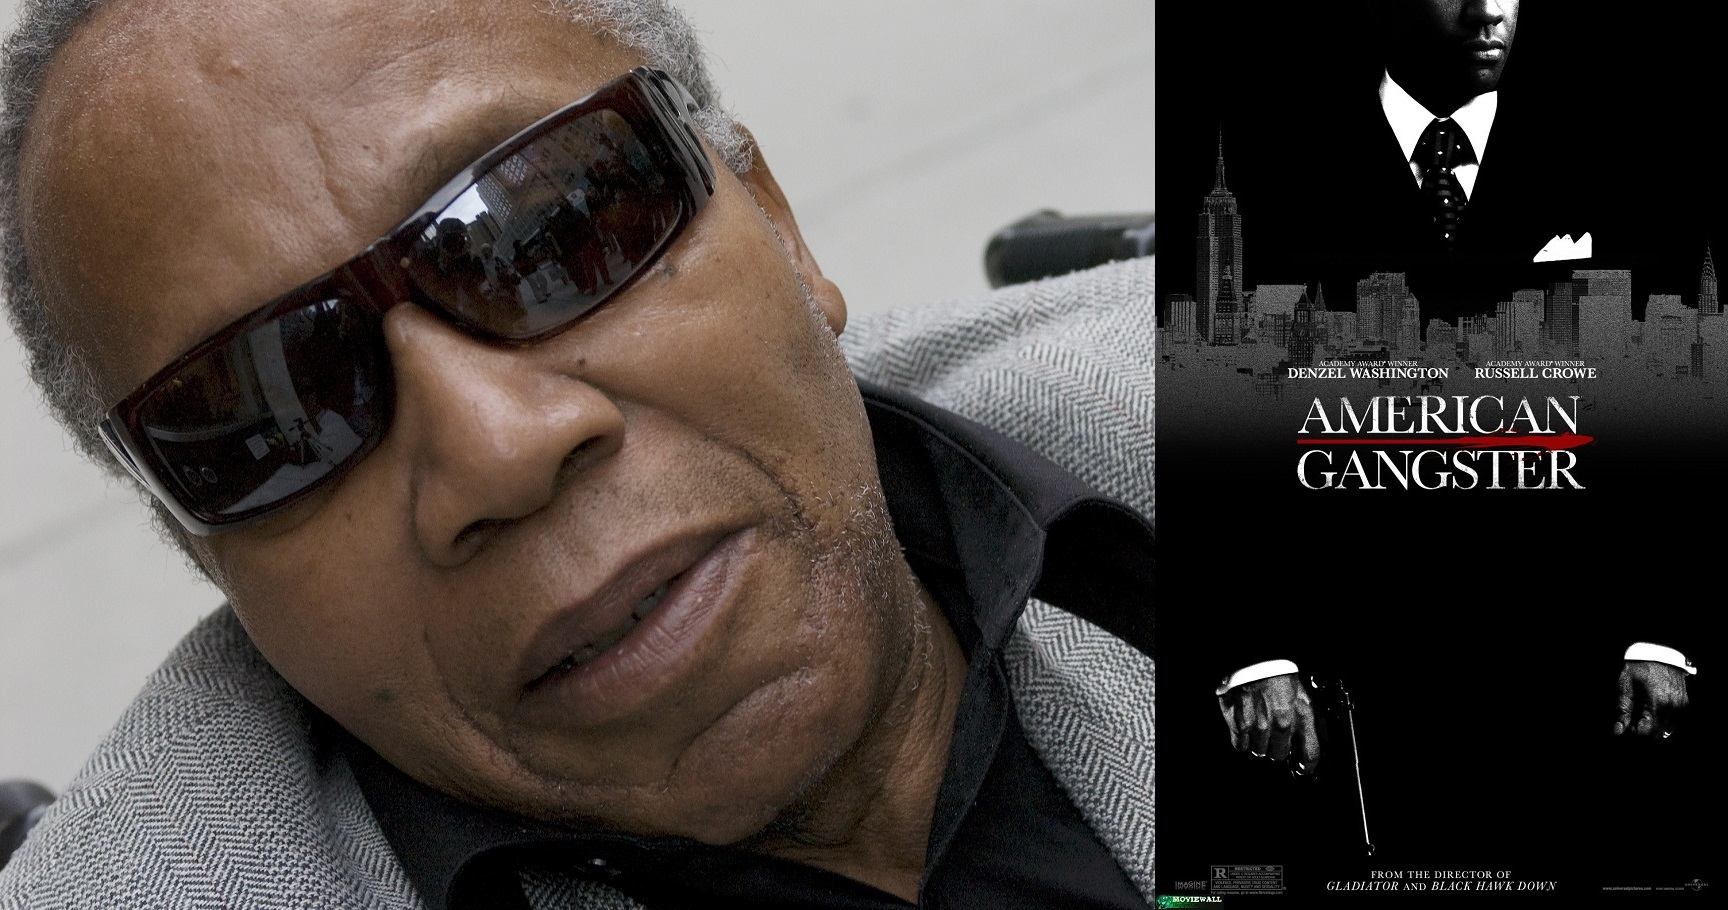 frank lucas the real american gangster American gangster is a 2007 crime film directed by ridley scott and starring  denzel washington and russell crowe washington portrays frank lucas, a real -.